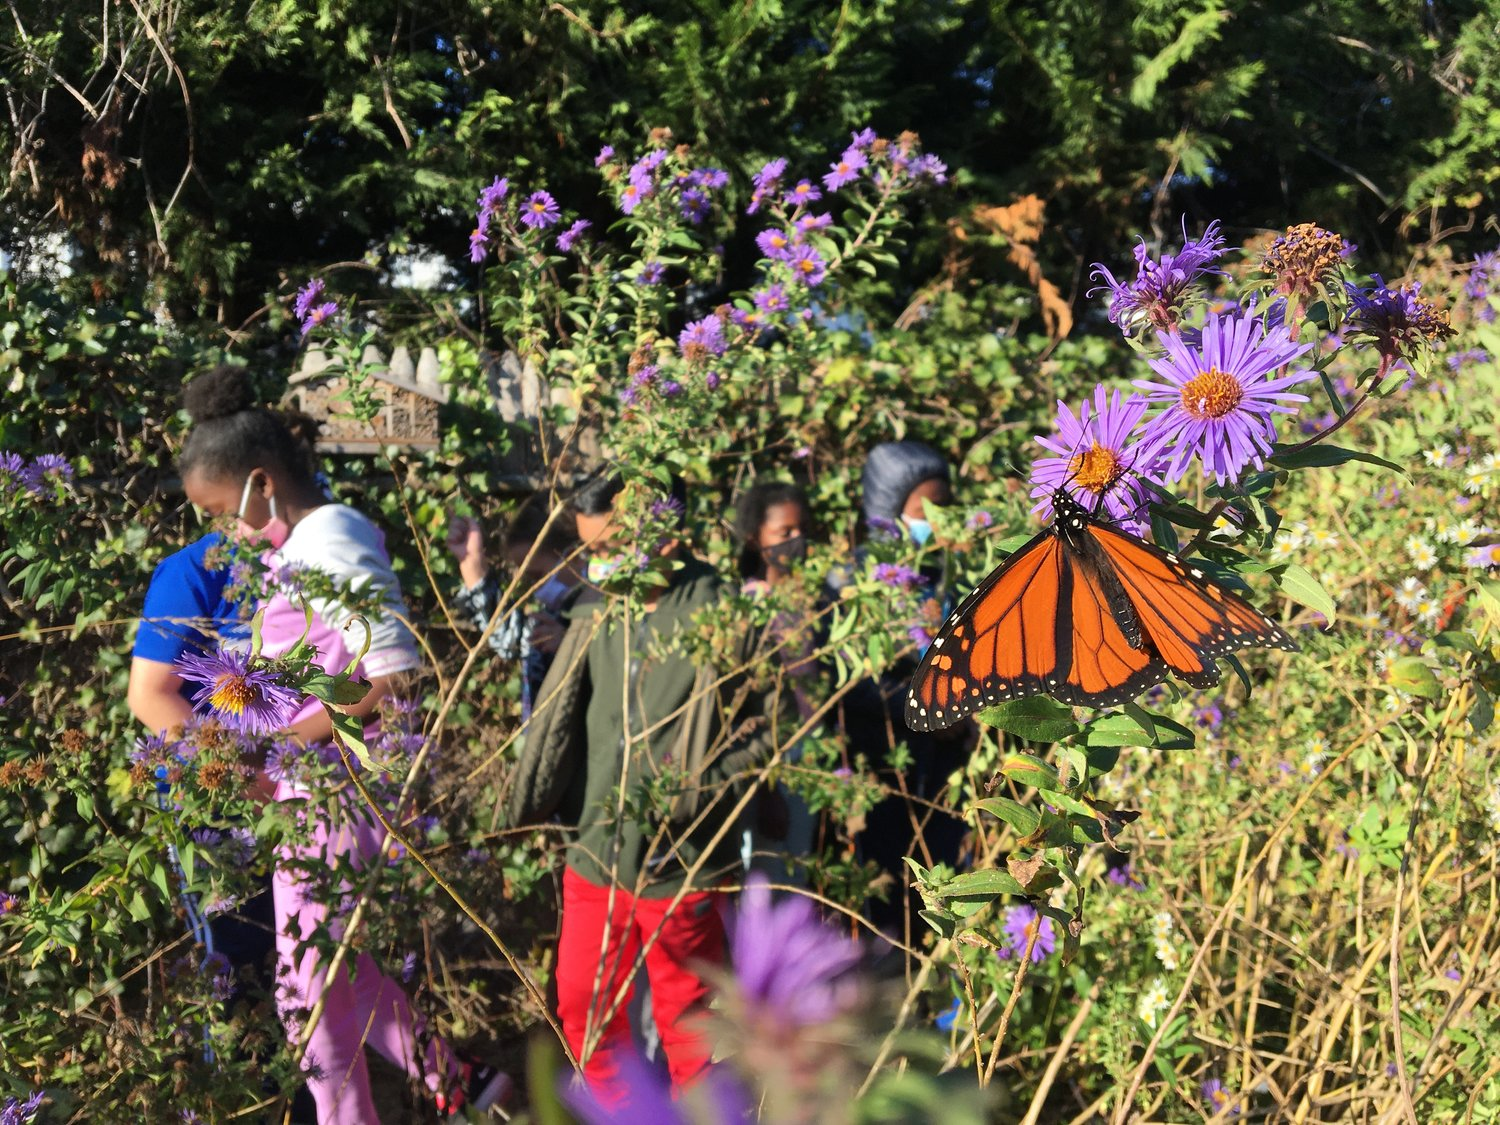 A Monarch butterfly danced around the milkweed in the Meadow Elementary School garden on Nov. 5.